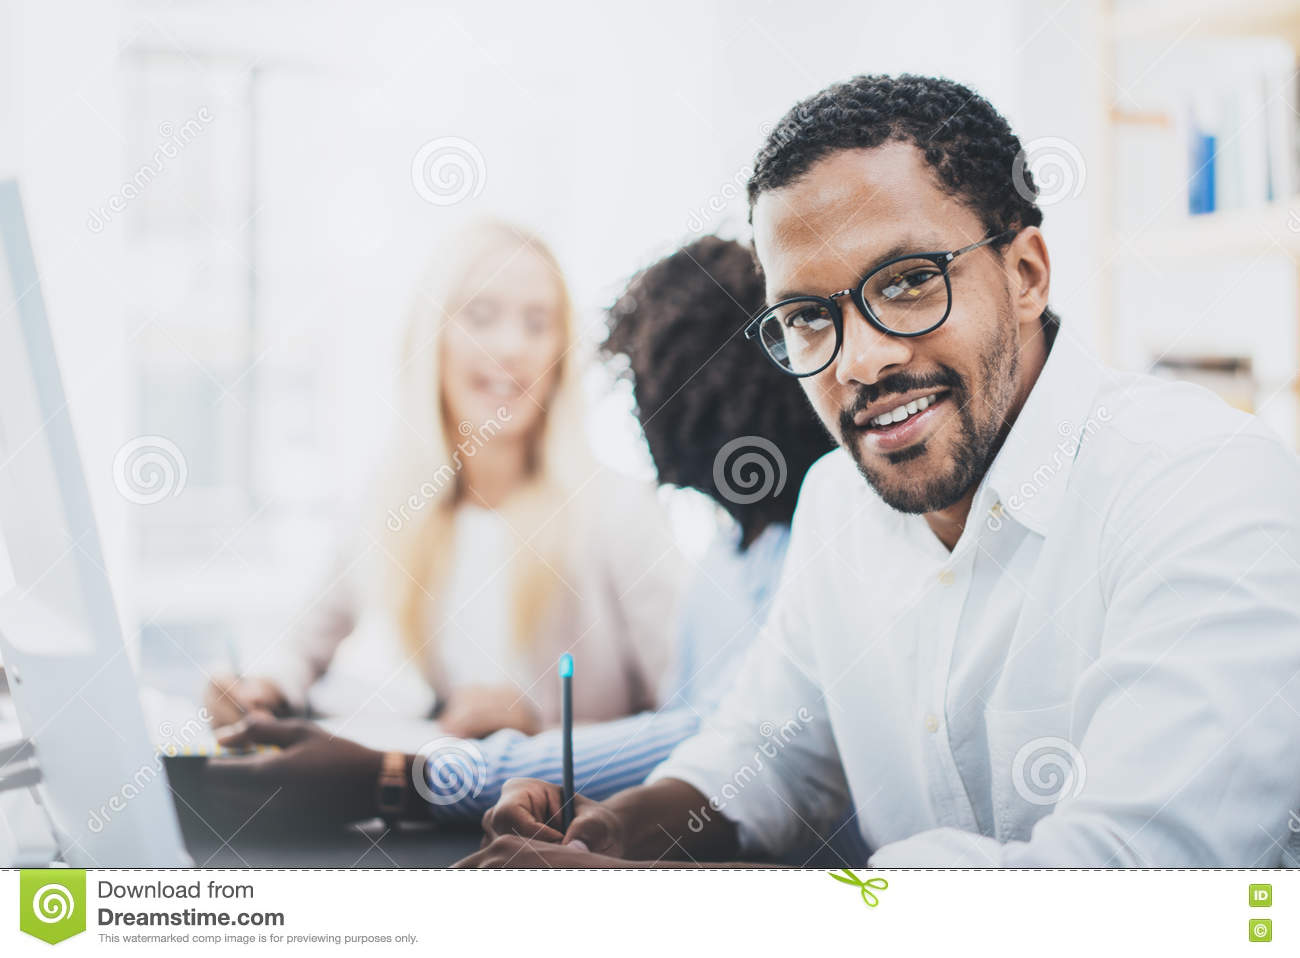 Dark skinned entrepreneur wearing glasses, working in modern office.African american man in white shirt looking and smiling at the